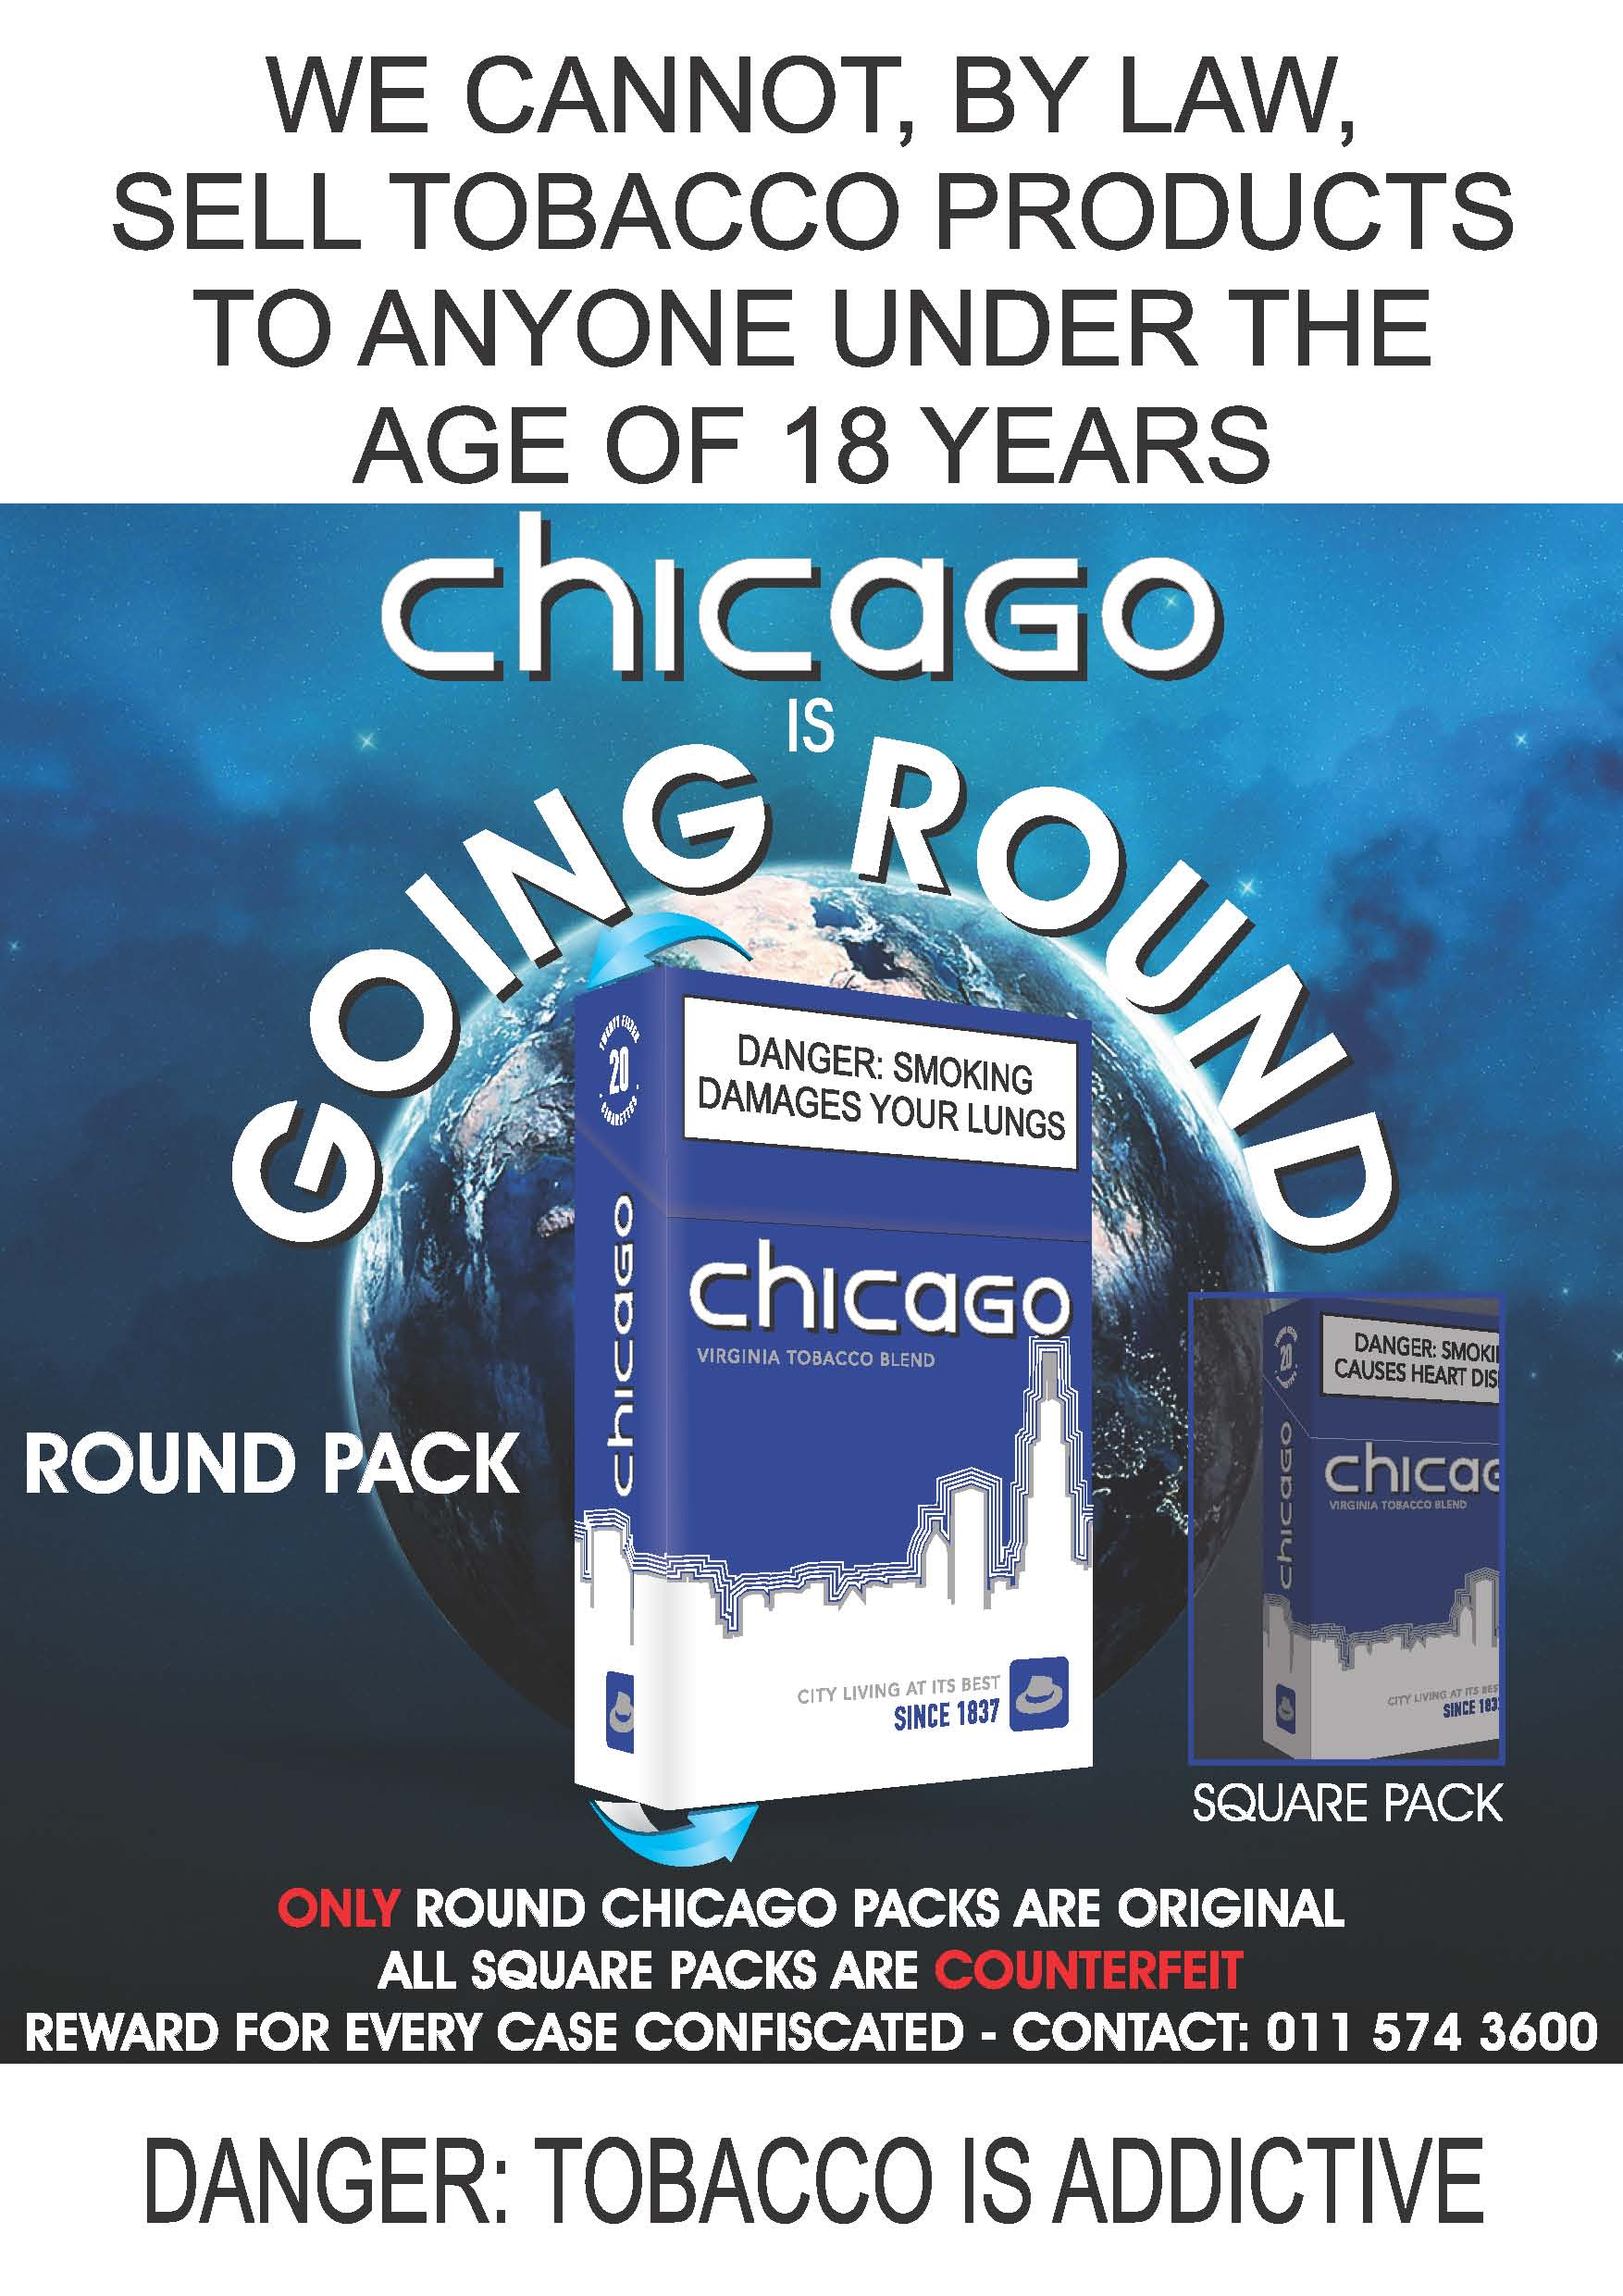 Chicago Round Edge New Final